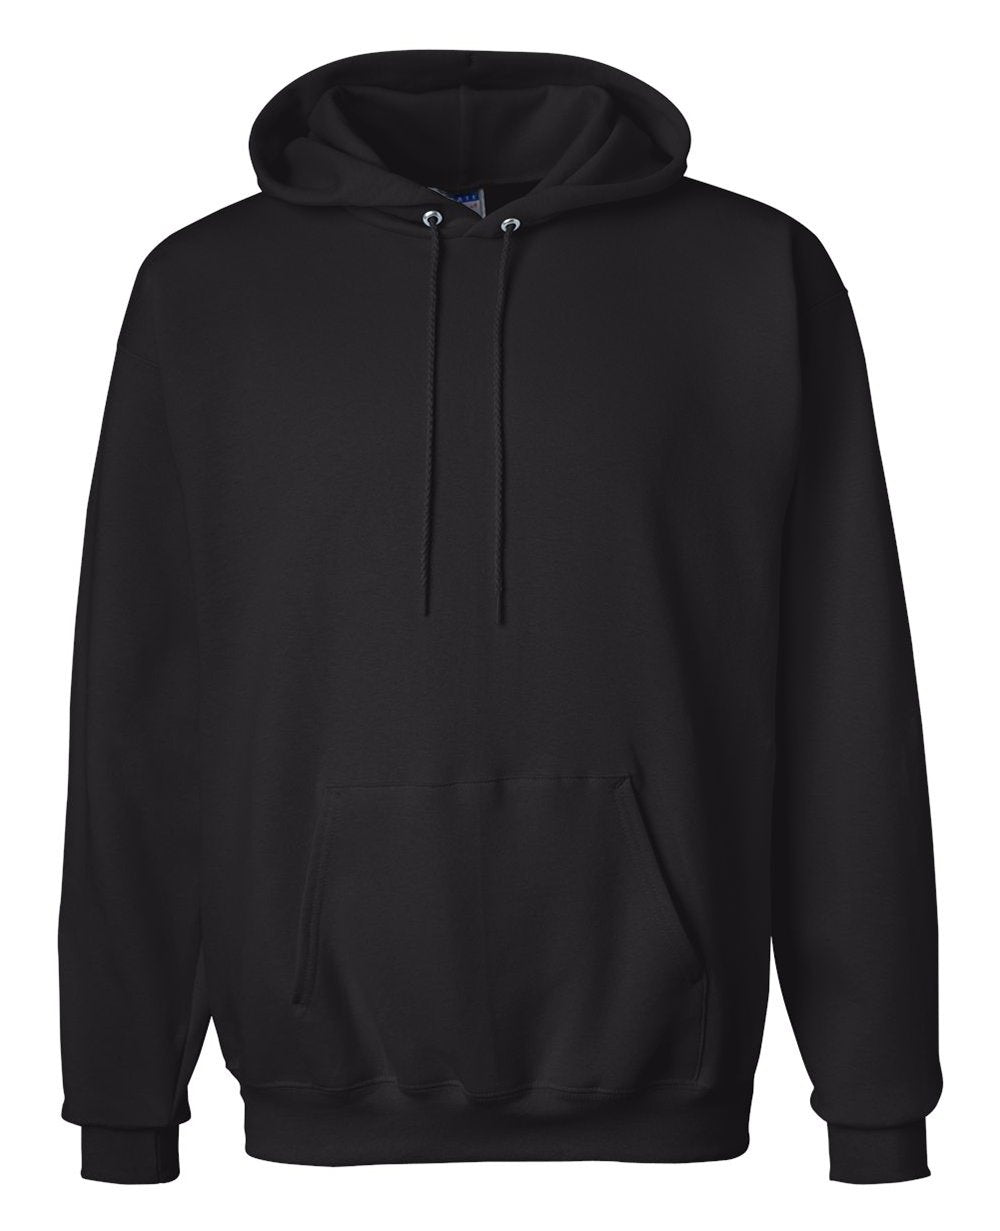 Pullover Hoodies in Black